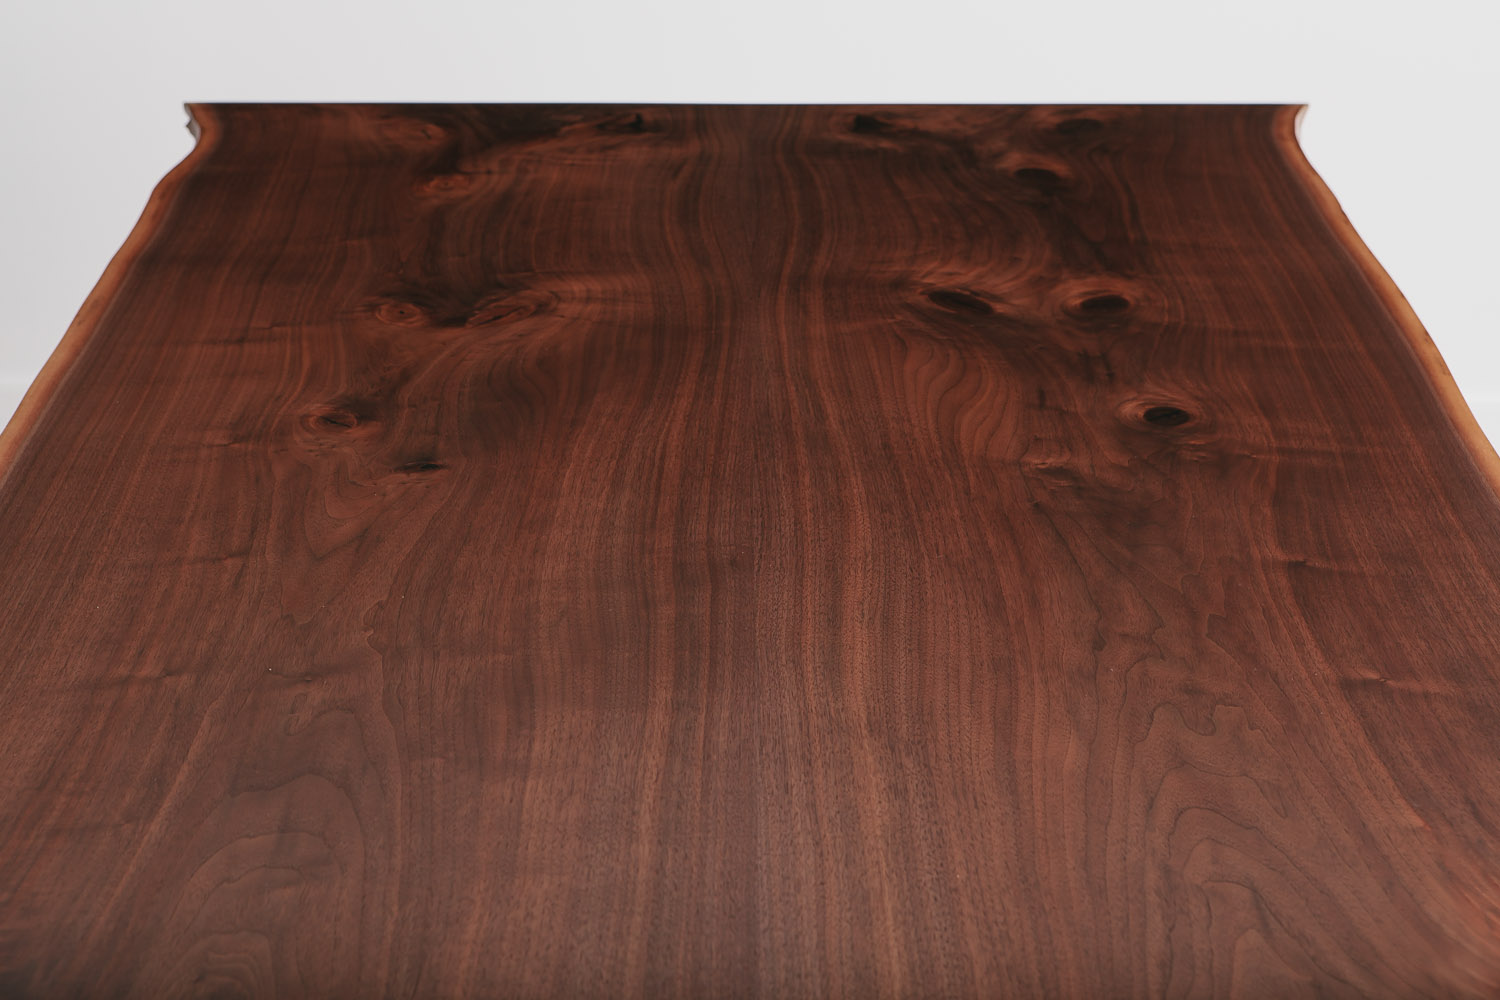 Bookmatched large natural walnut tree slab dining table